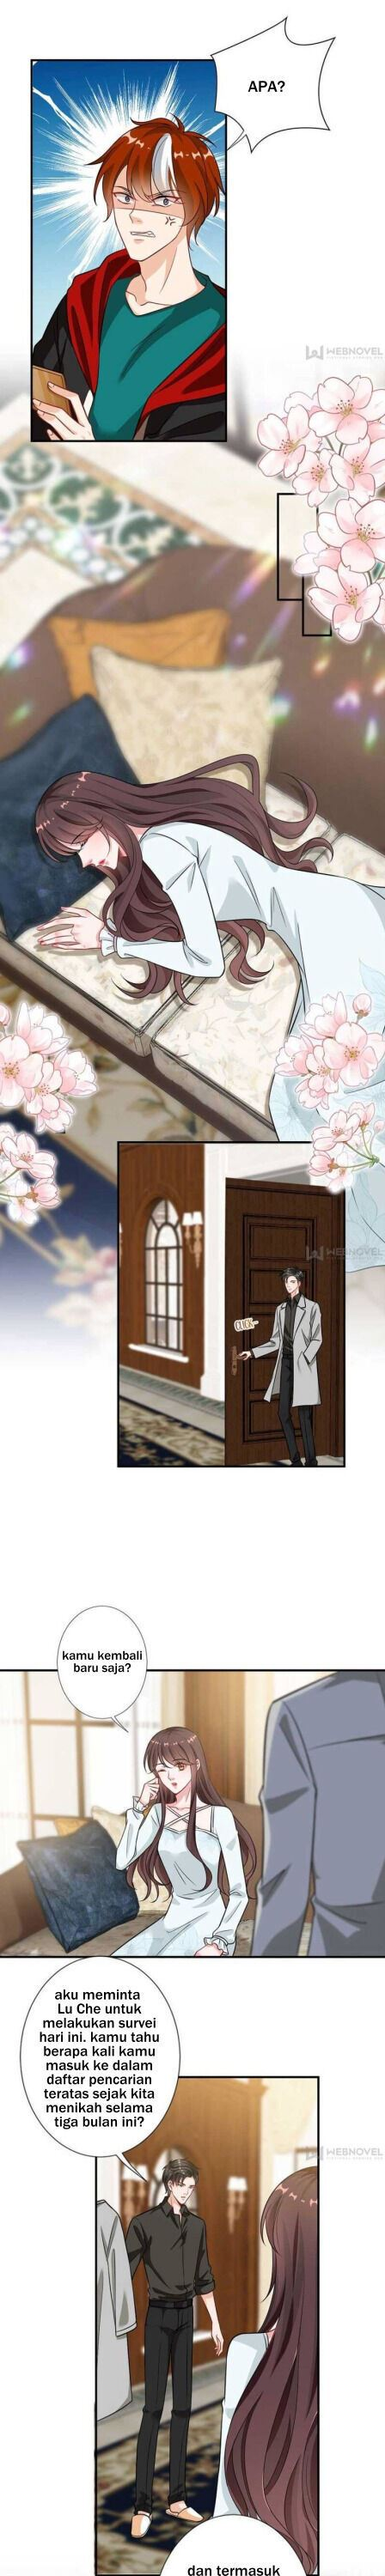 Trial Marriage Husband: Need to Work Hard Chapter 101